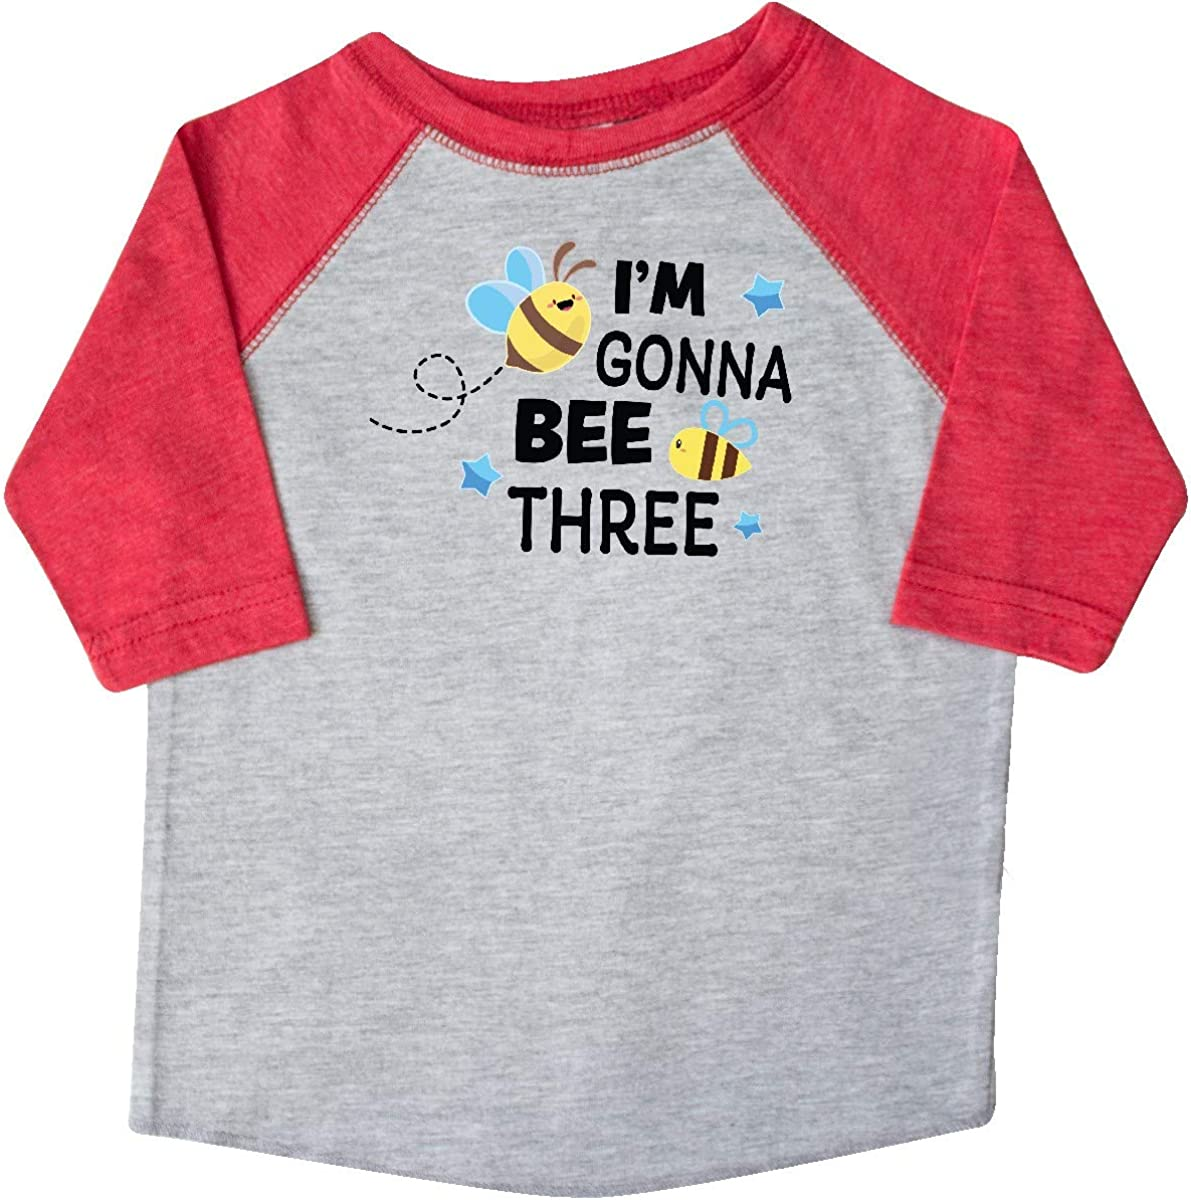 inktastic Im Gonna Bee 3 with Cute Bees Toddler T-Shirt